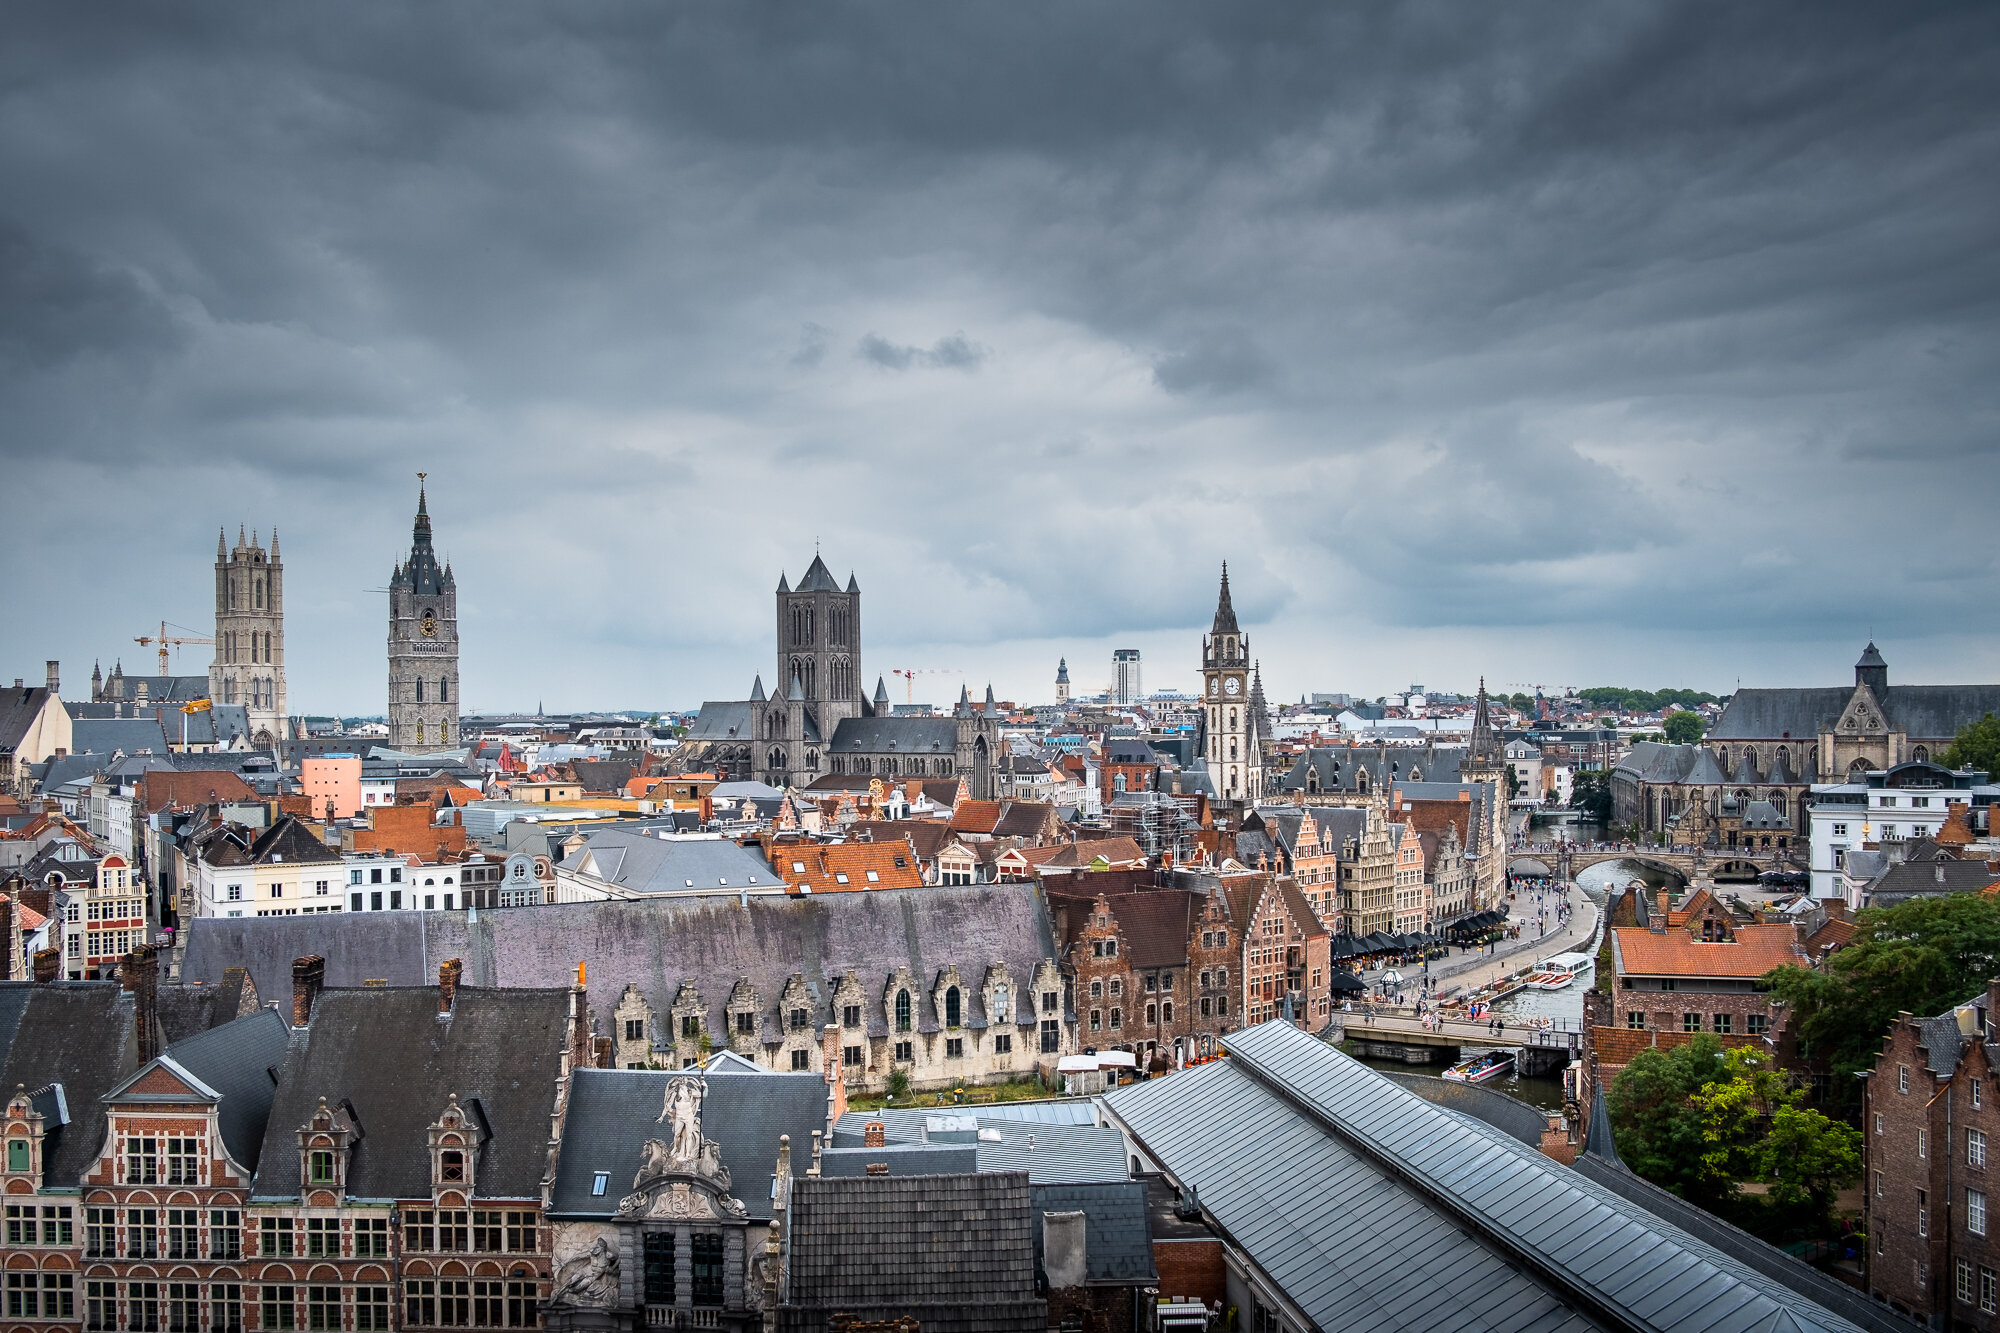 The Ghent Rooftops taken from Gravensteen Castle | Fujifilm XT-30 | XF18-55mm | 18mm | 1/850 Second | f/3.6 | ISO160